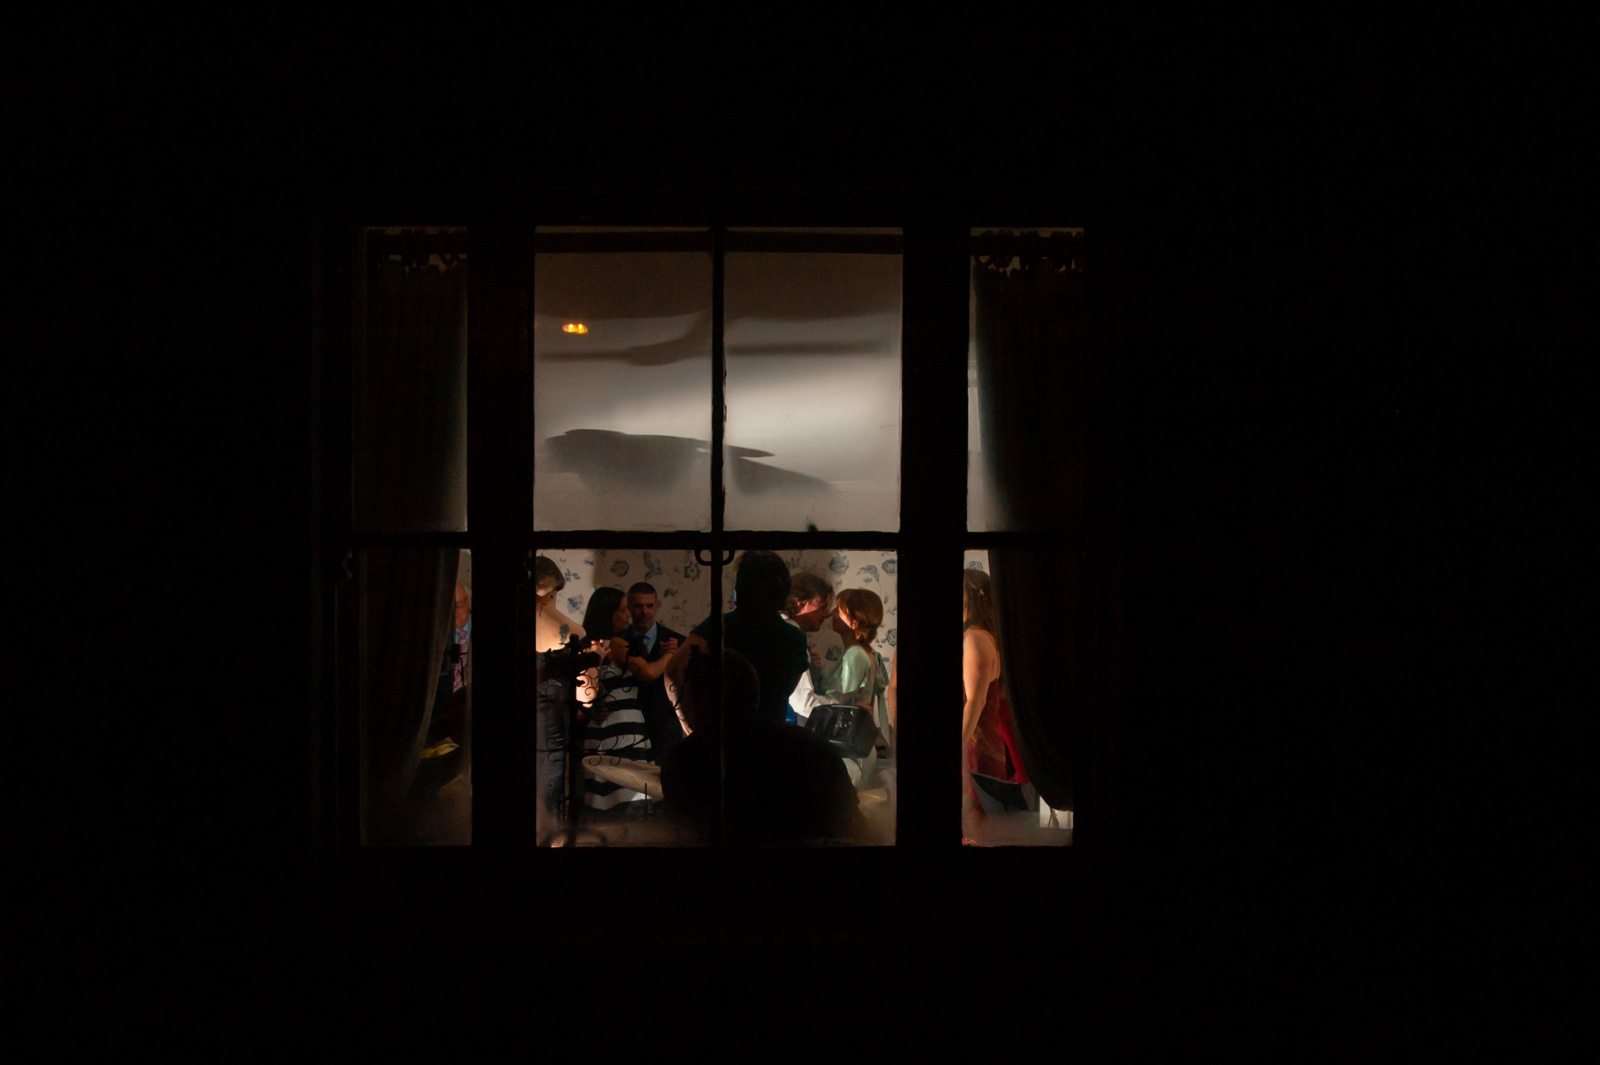 Looking through window at couple and guests dancing